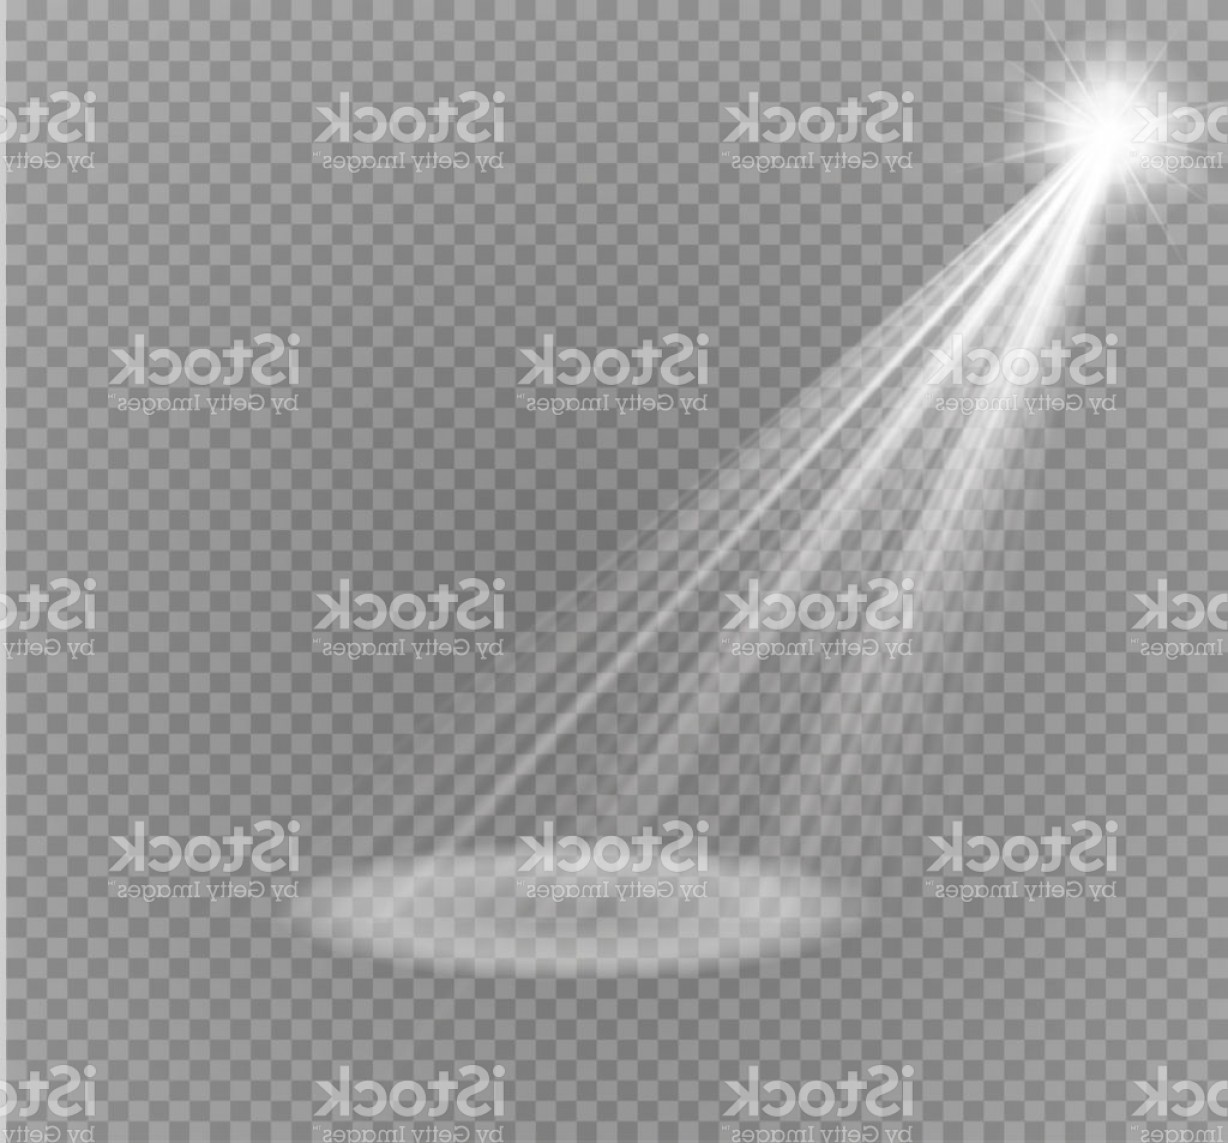 Transparent Brown Vector Background: Vector Spotlight Light Effectlight Beam Isolated On Transparent Background Vector Gm